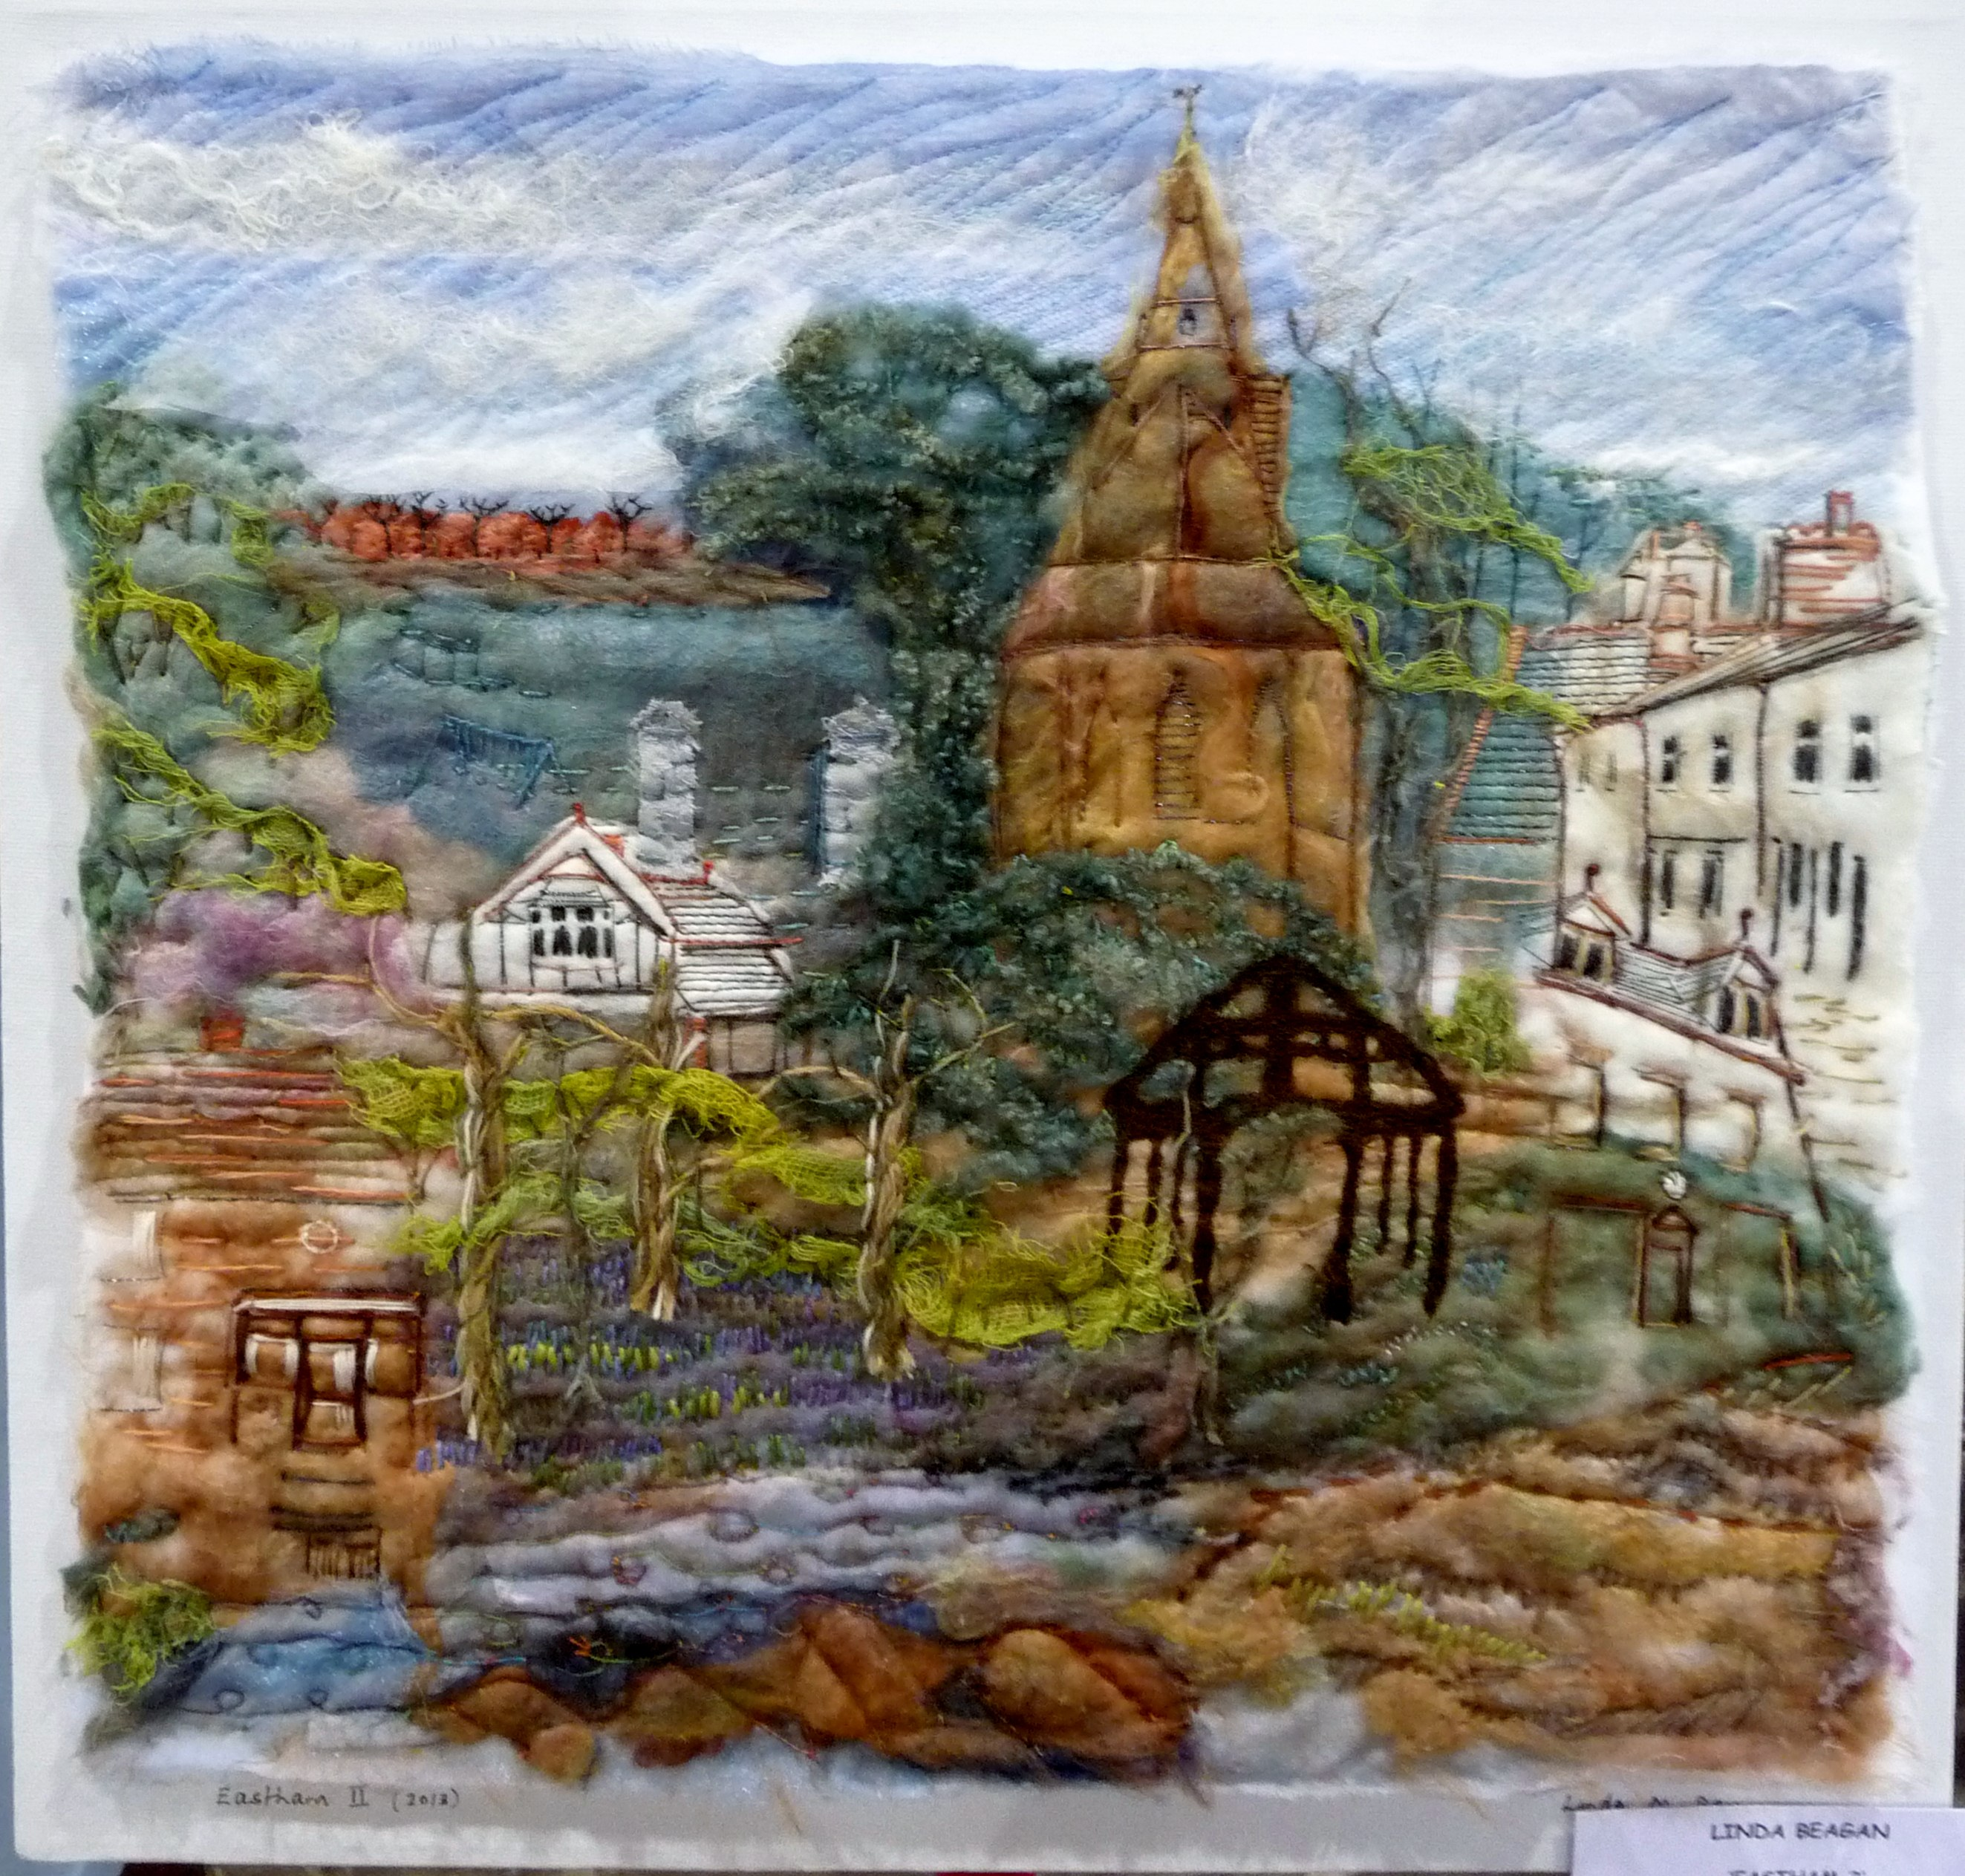 EASTHAM 2 by Linda Beagan, silk collage, hand and machine stitched